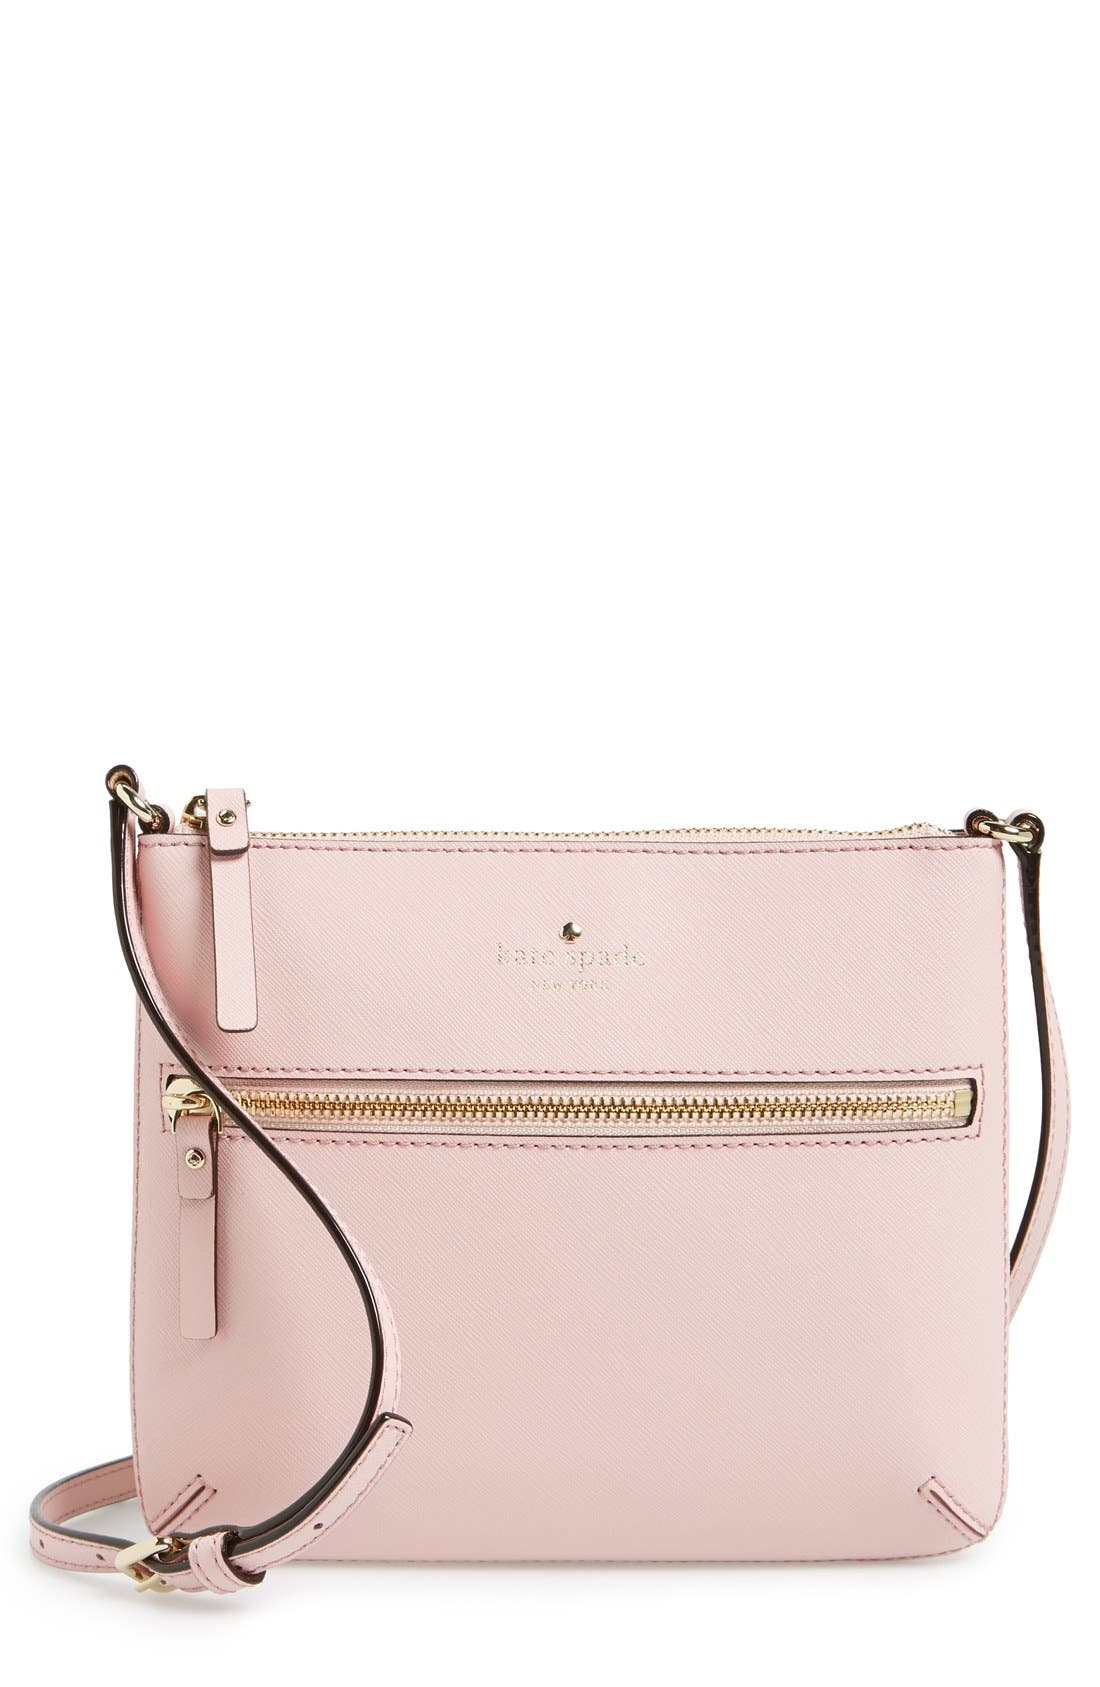 Main Image - kate spade new york 'cedar street - tenley' crossbody bag